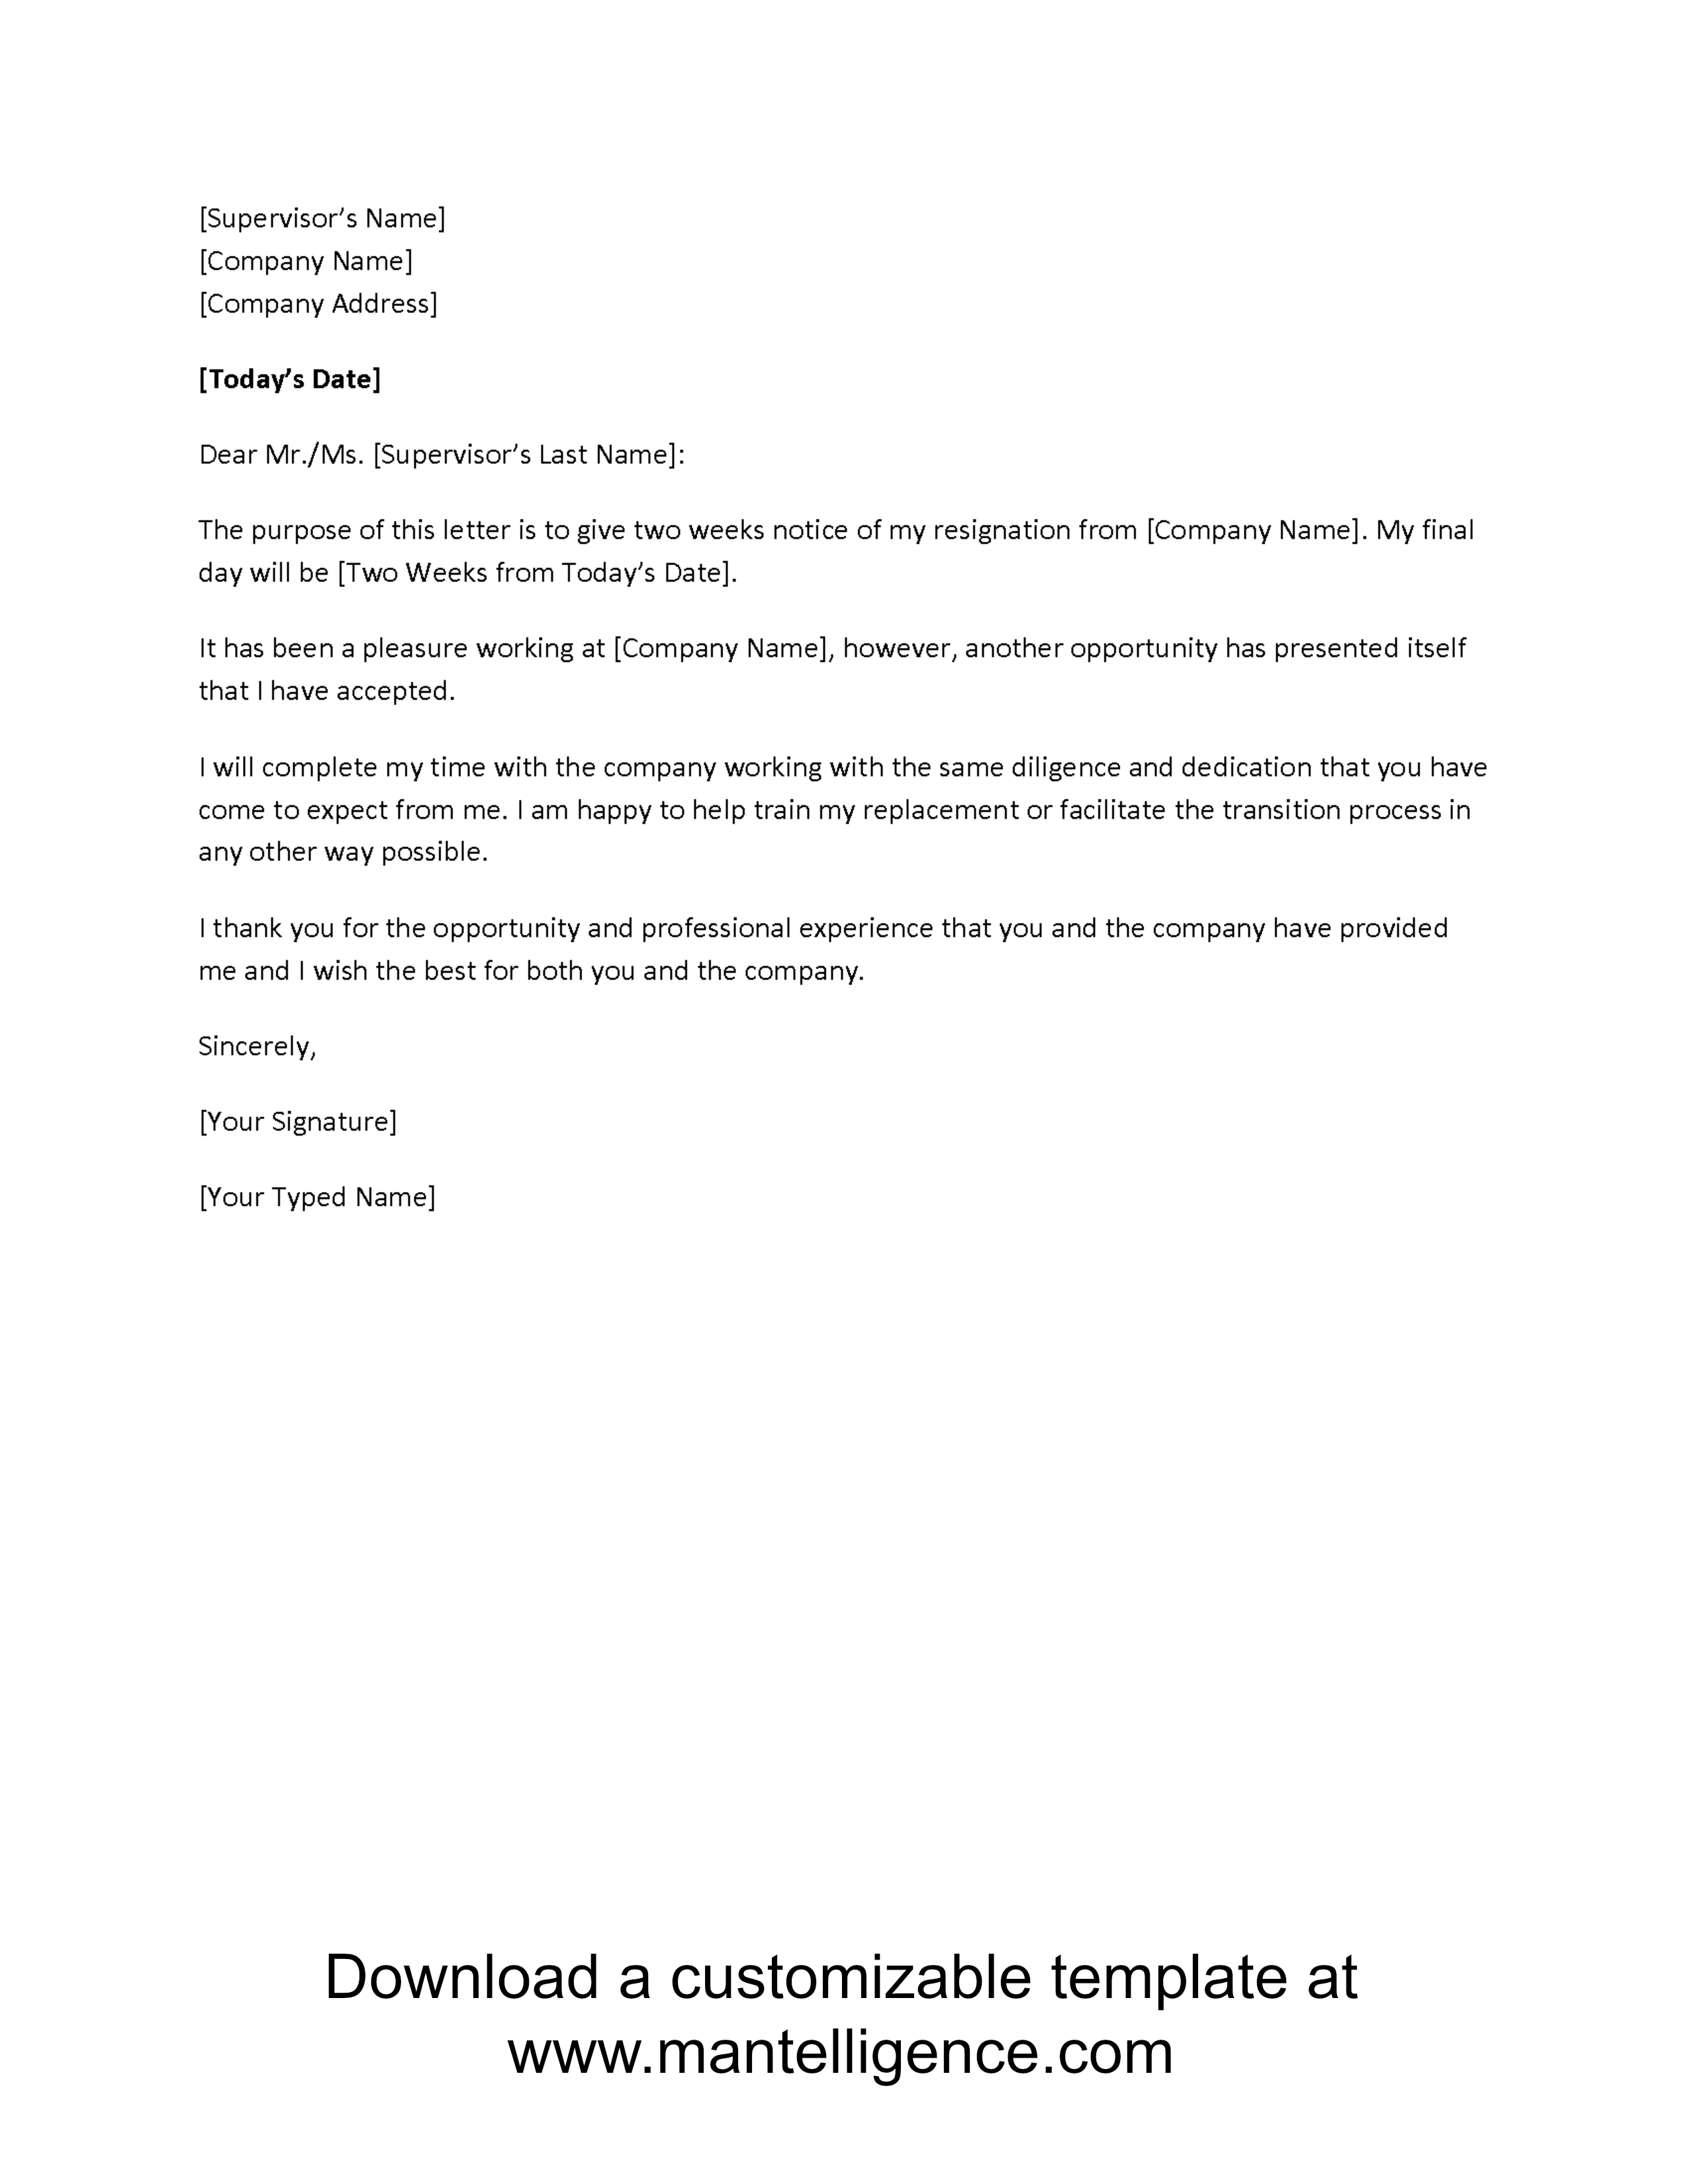 Resignation Letter Template Free Download - 3 Highly Professional Two Weeks Notice Letter Templates